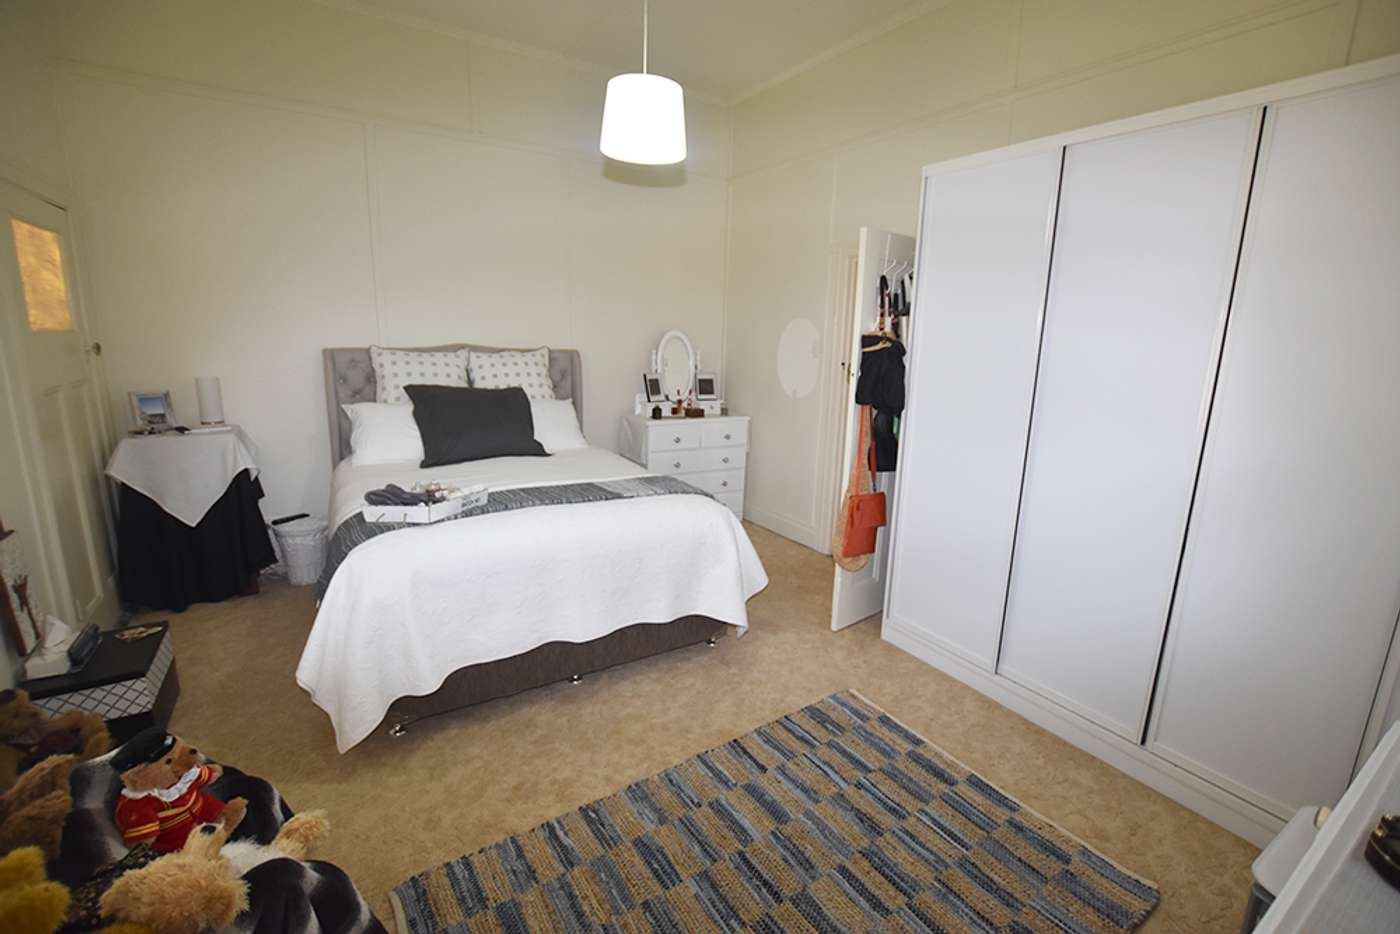 Sixth view of Homely house listing, 7 Ryrie Street, Stanhope VIC 3623